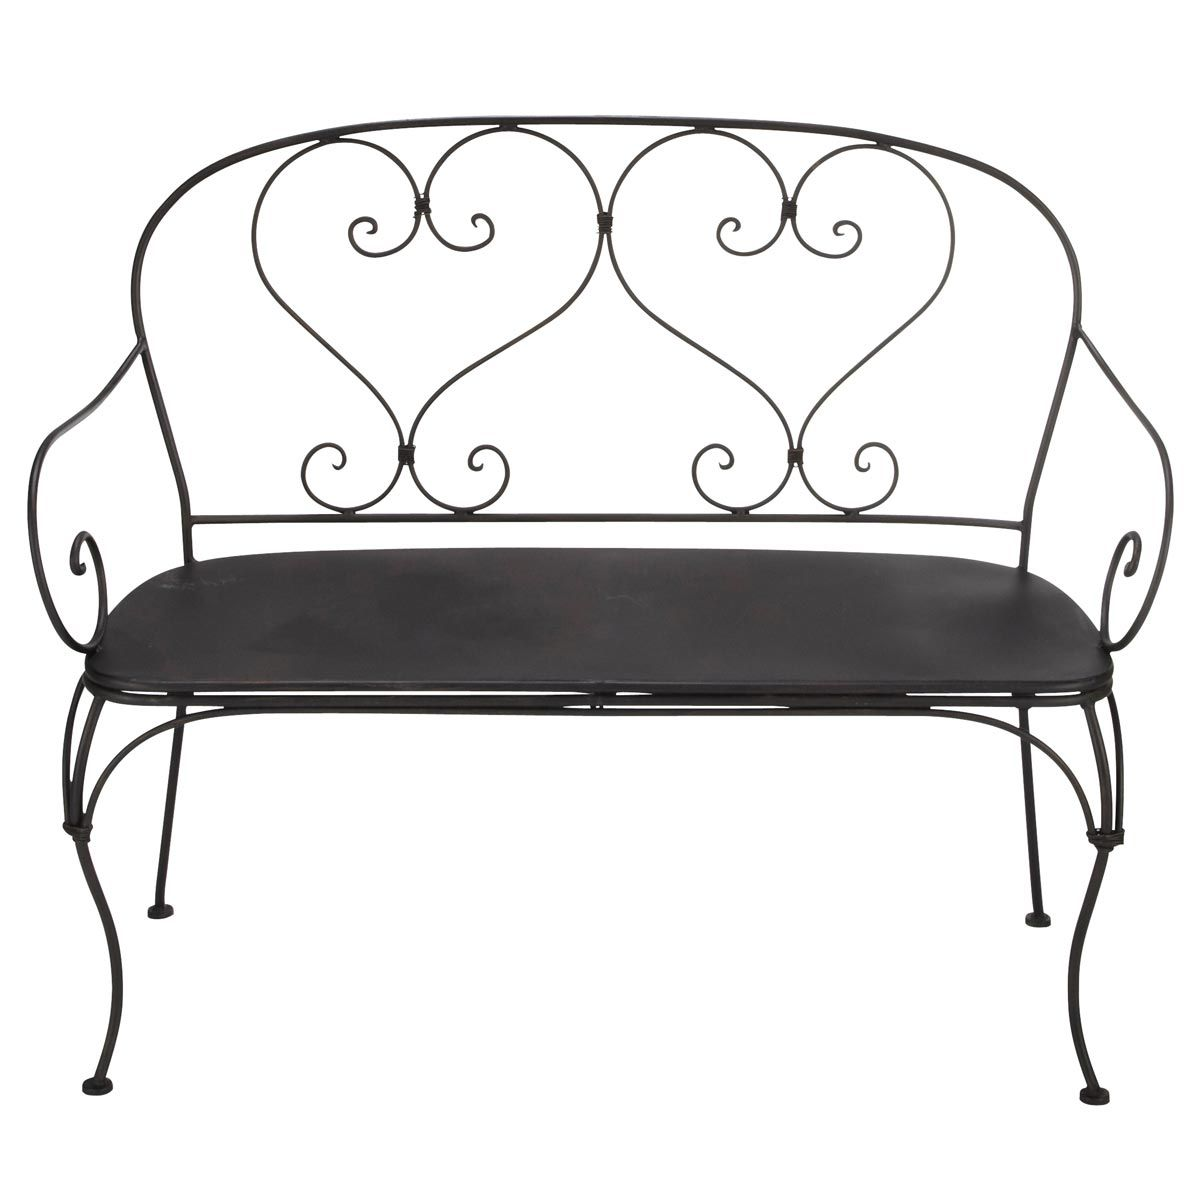 Mobilier de jardin | Home sweet home | Patio bench, Wrought ...